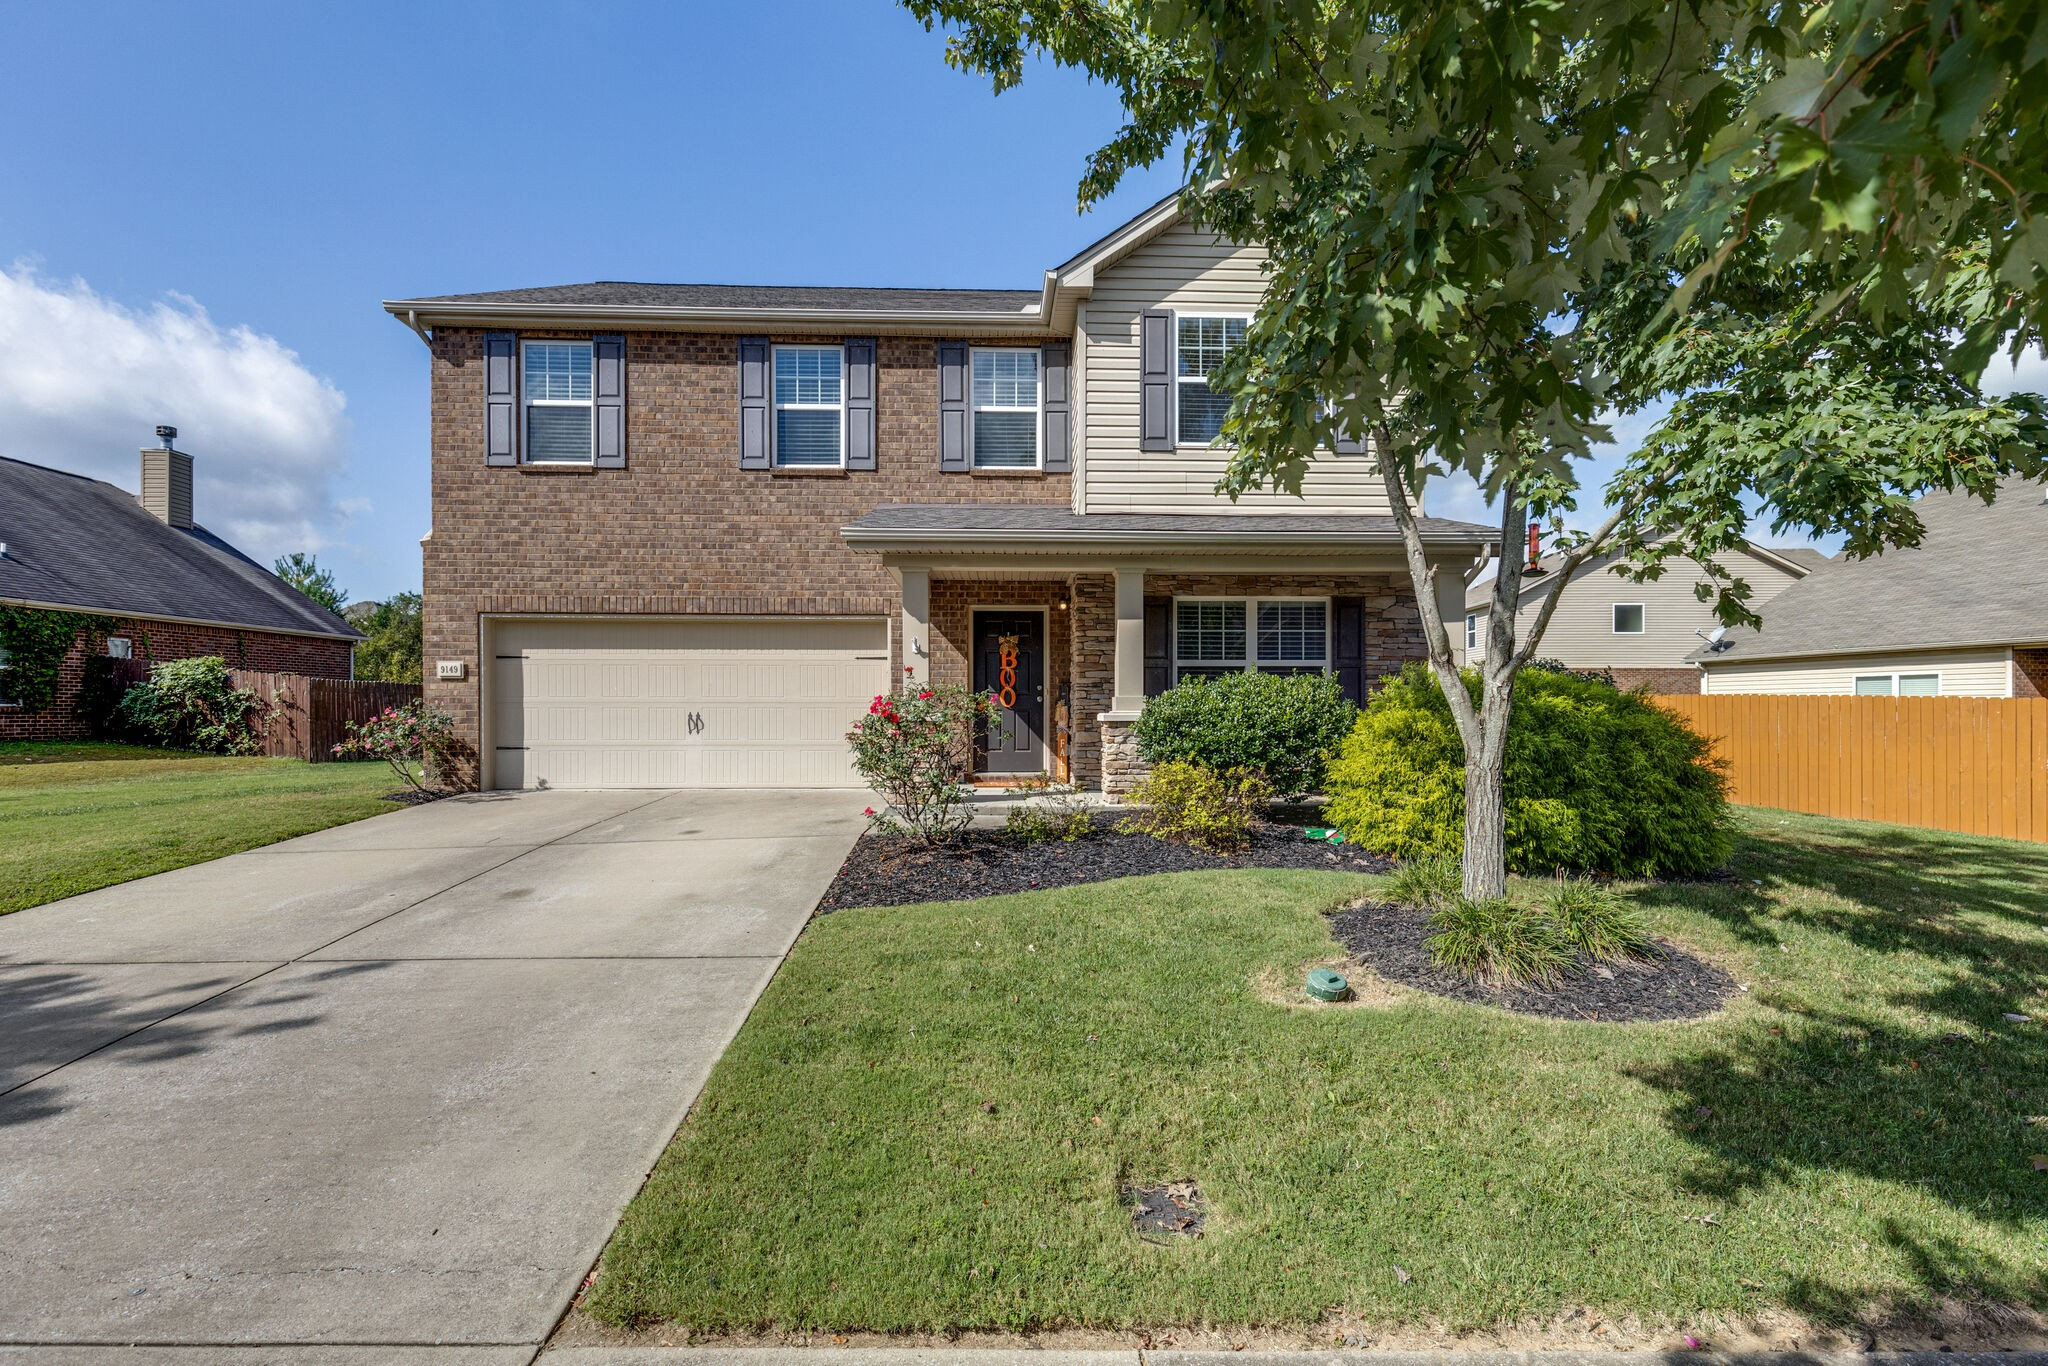 Wonderful family home with tile floors down and stainless steel appliances. Quartz counter tops - super master bedroom - playroom loft - new carpet upstairs. New roof 2018. New HVAC 2021. Move-in ready. All offers due Sunday 10/17/21 @ 5:00 pm. Seller has a right to accept any offer at any time.